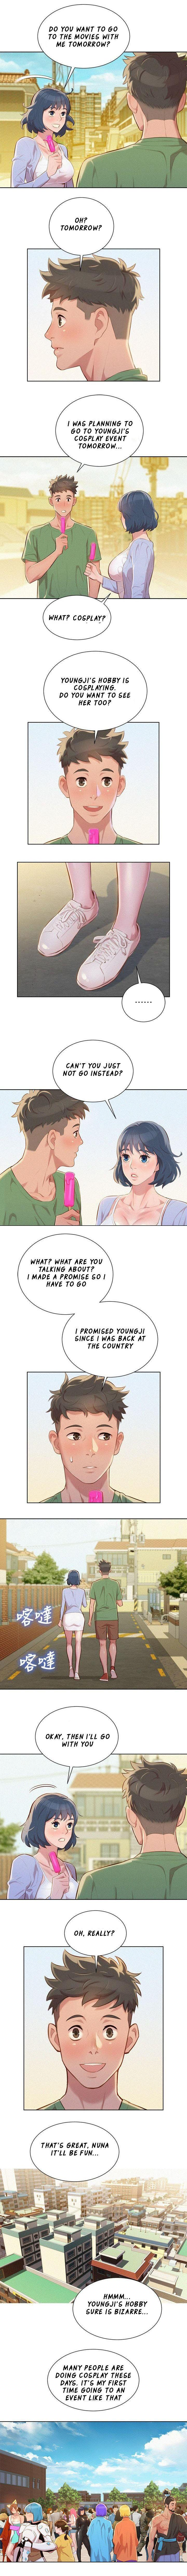 What do you Take me For? Ch.42/? 382